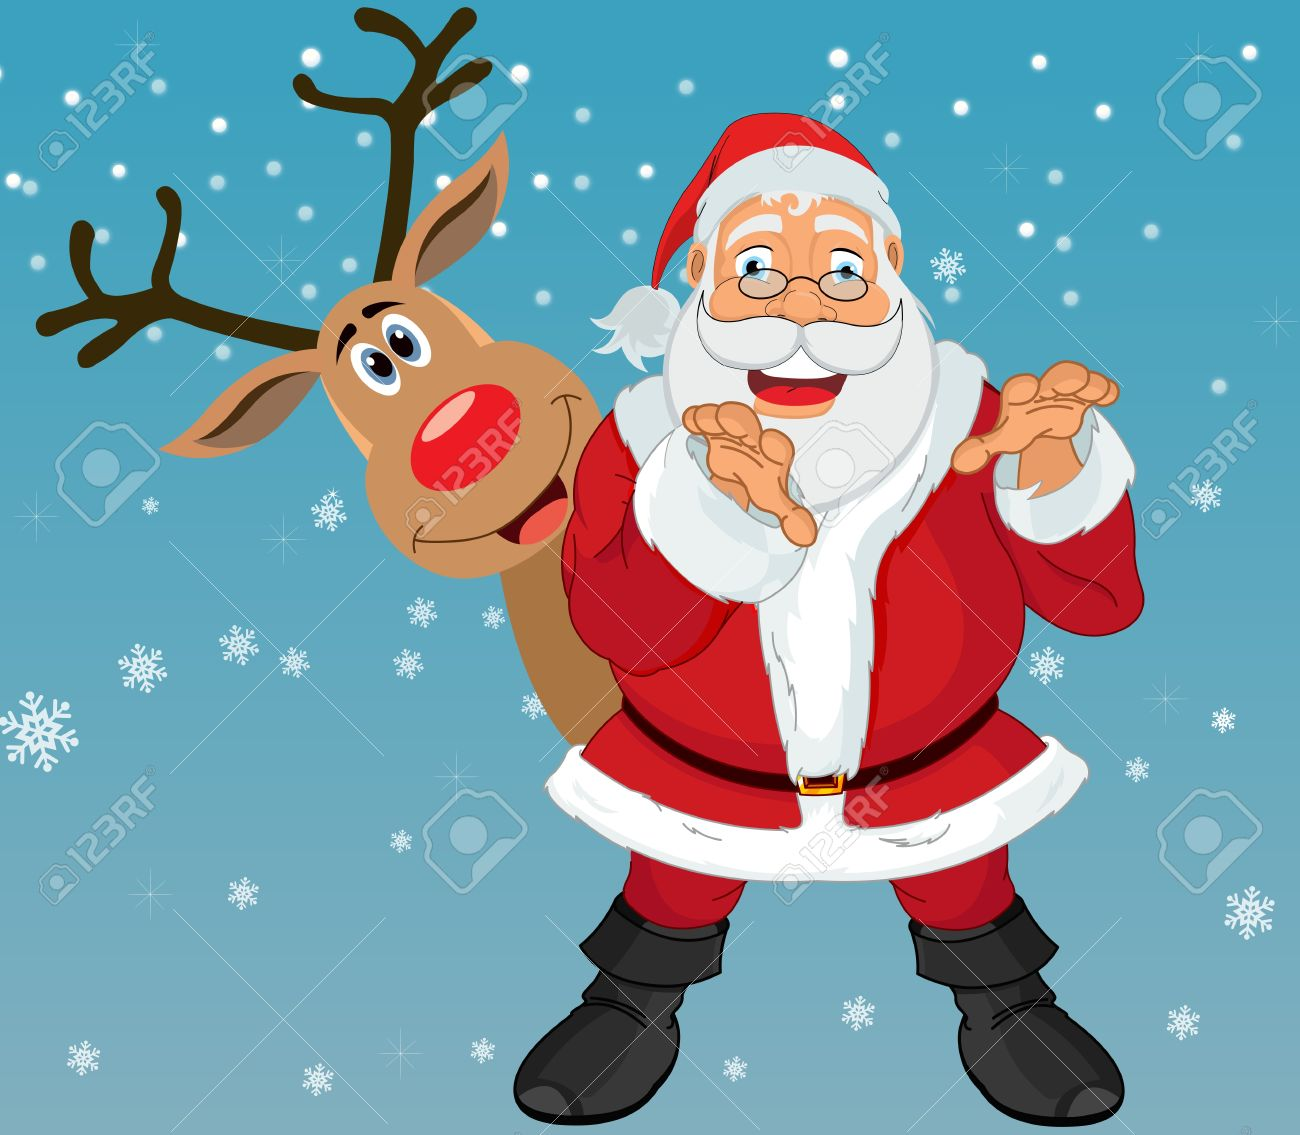 Uncategorized Santa And Rudolph santa claus and rudolph the reindeer in blue background with snowflakes vector illustration stock vector